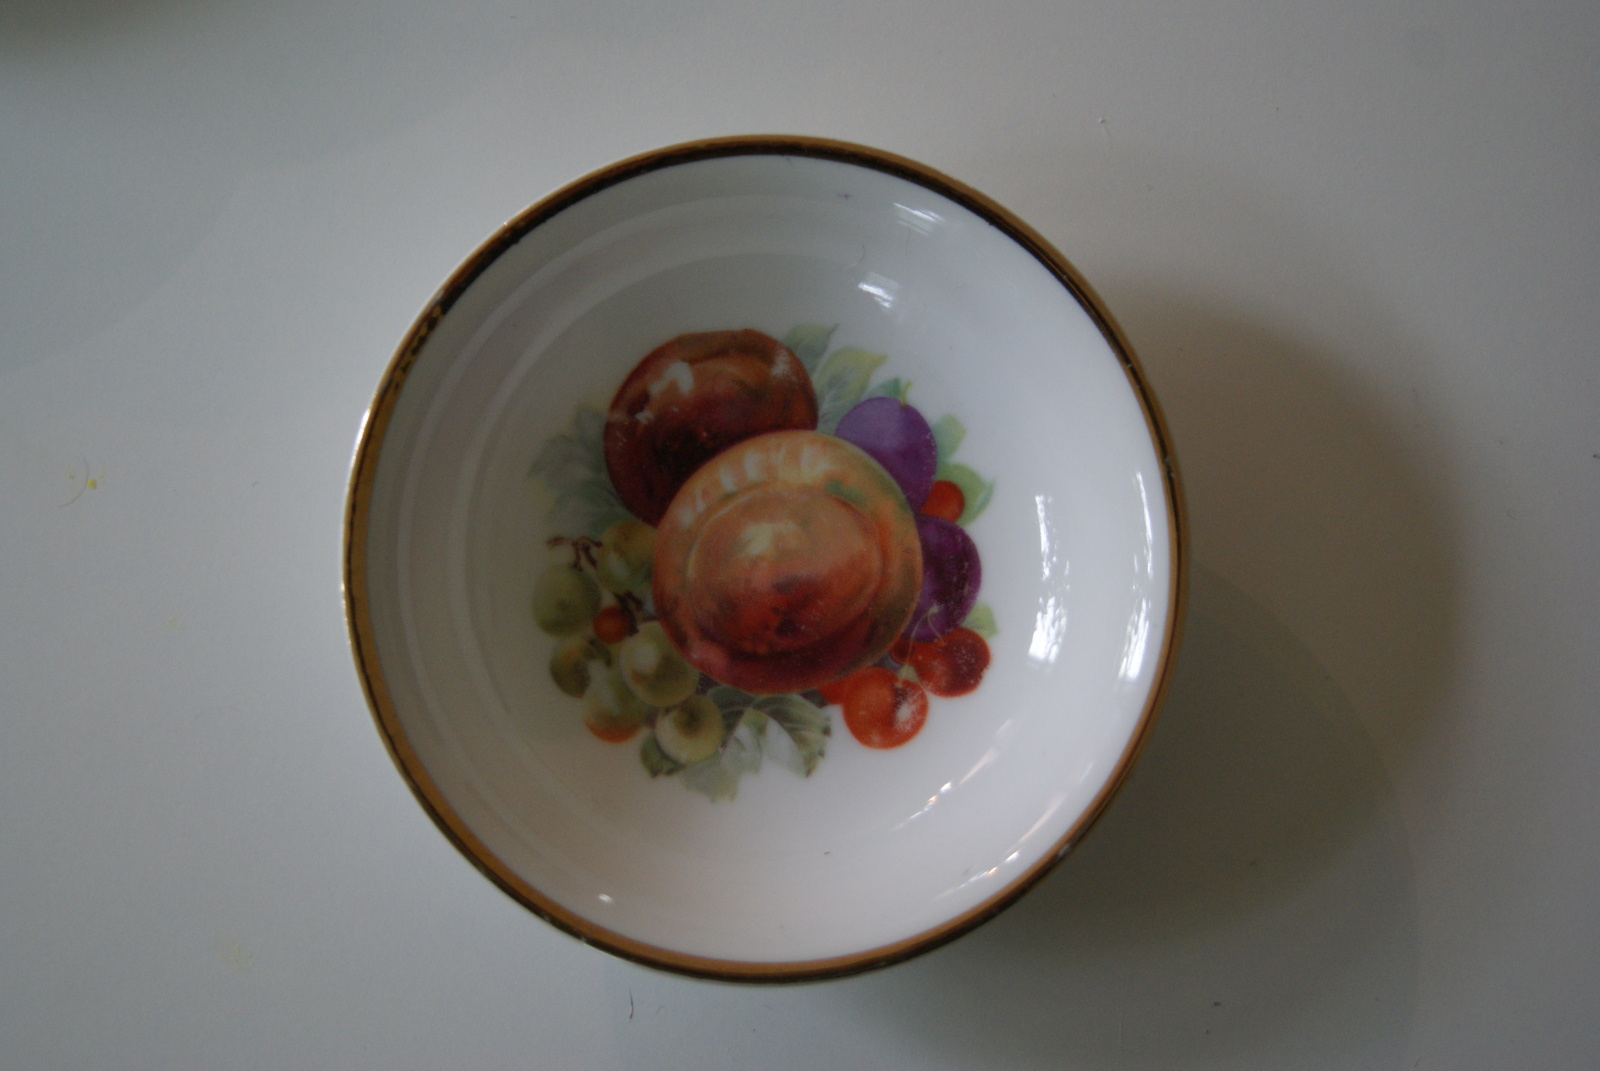 Porsgrund dessert bowl with fruits - plums, peaches, cherries and grapes